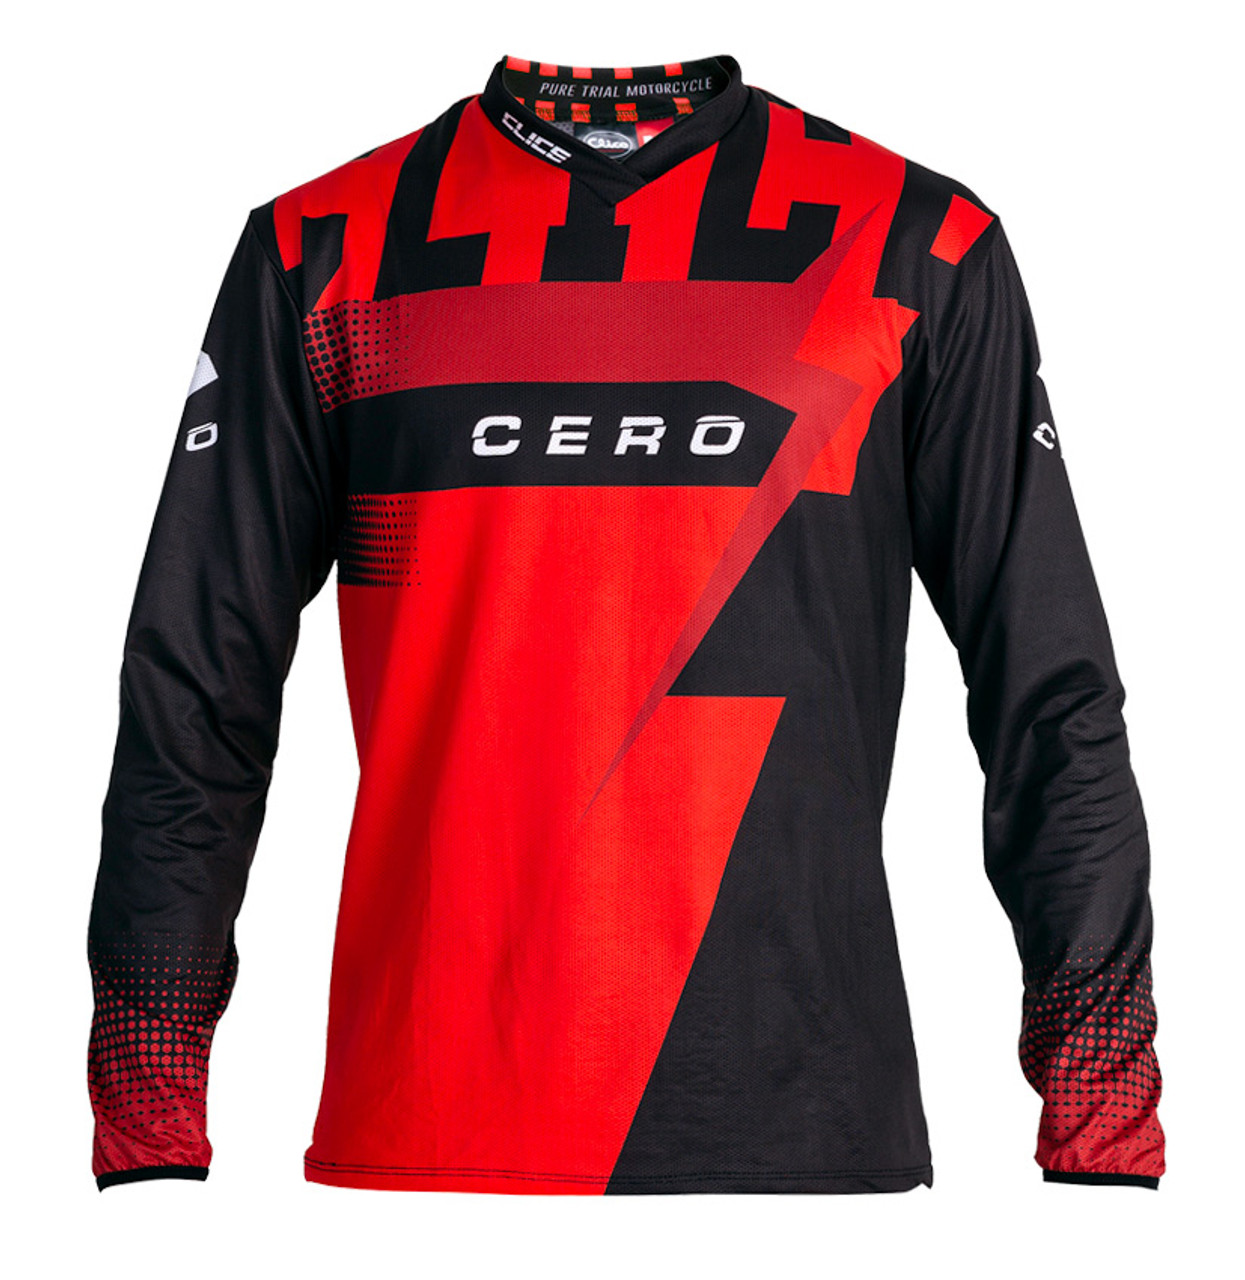 2020 Cero Trials Jersey, red